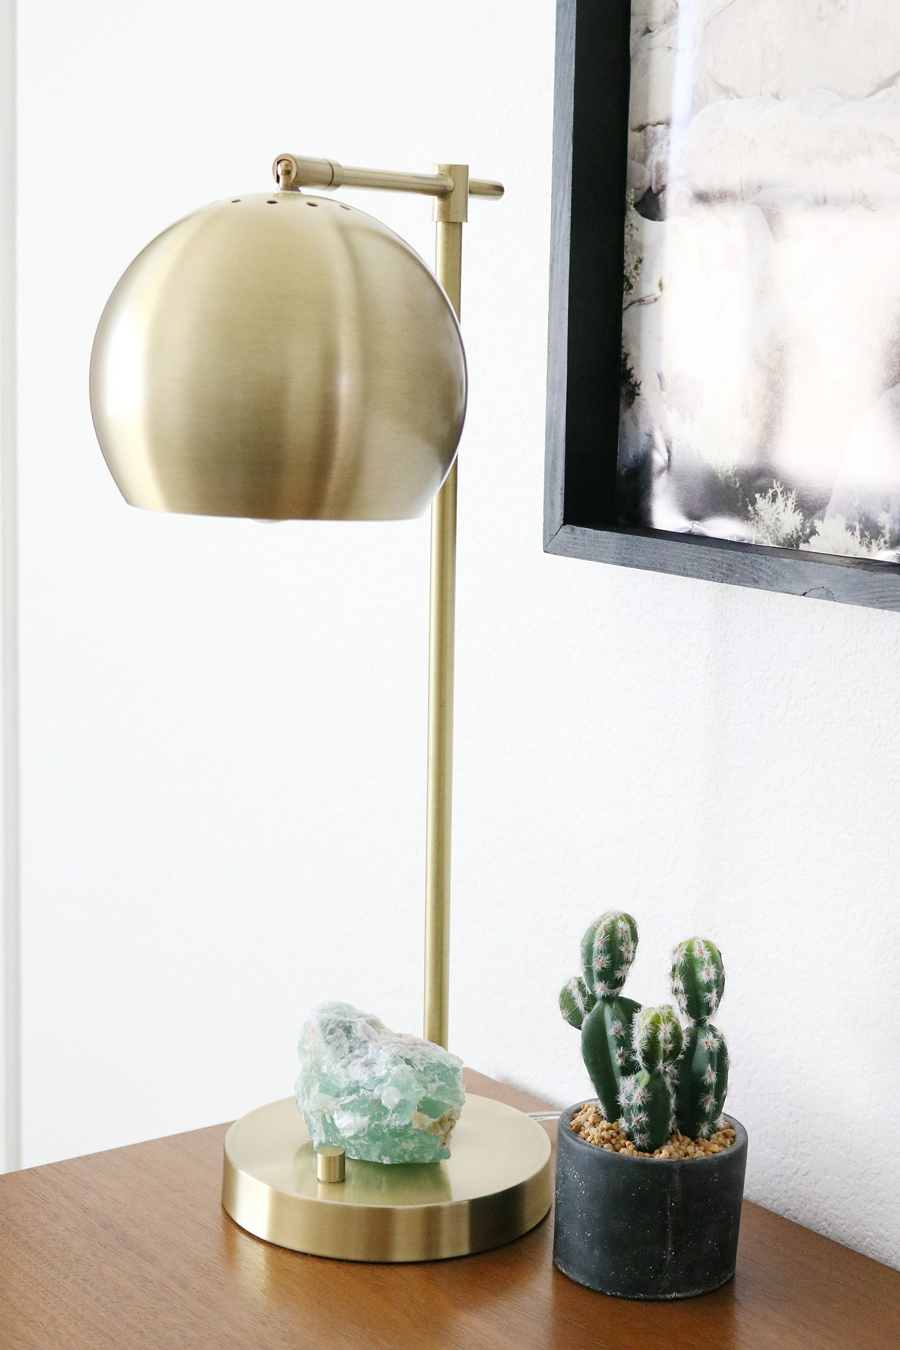 Better Homes & Gardens Brass Orb Desk Lamp